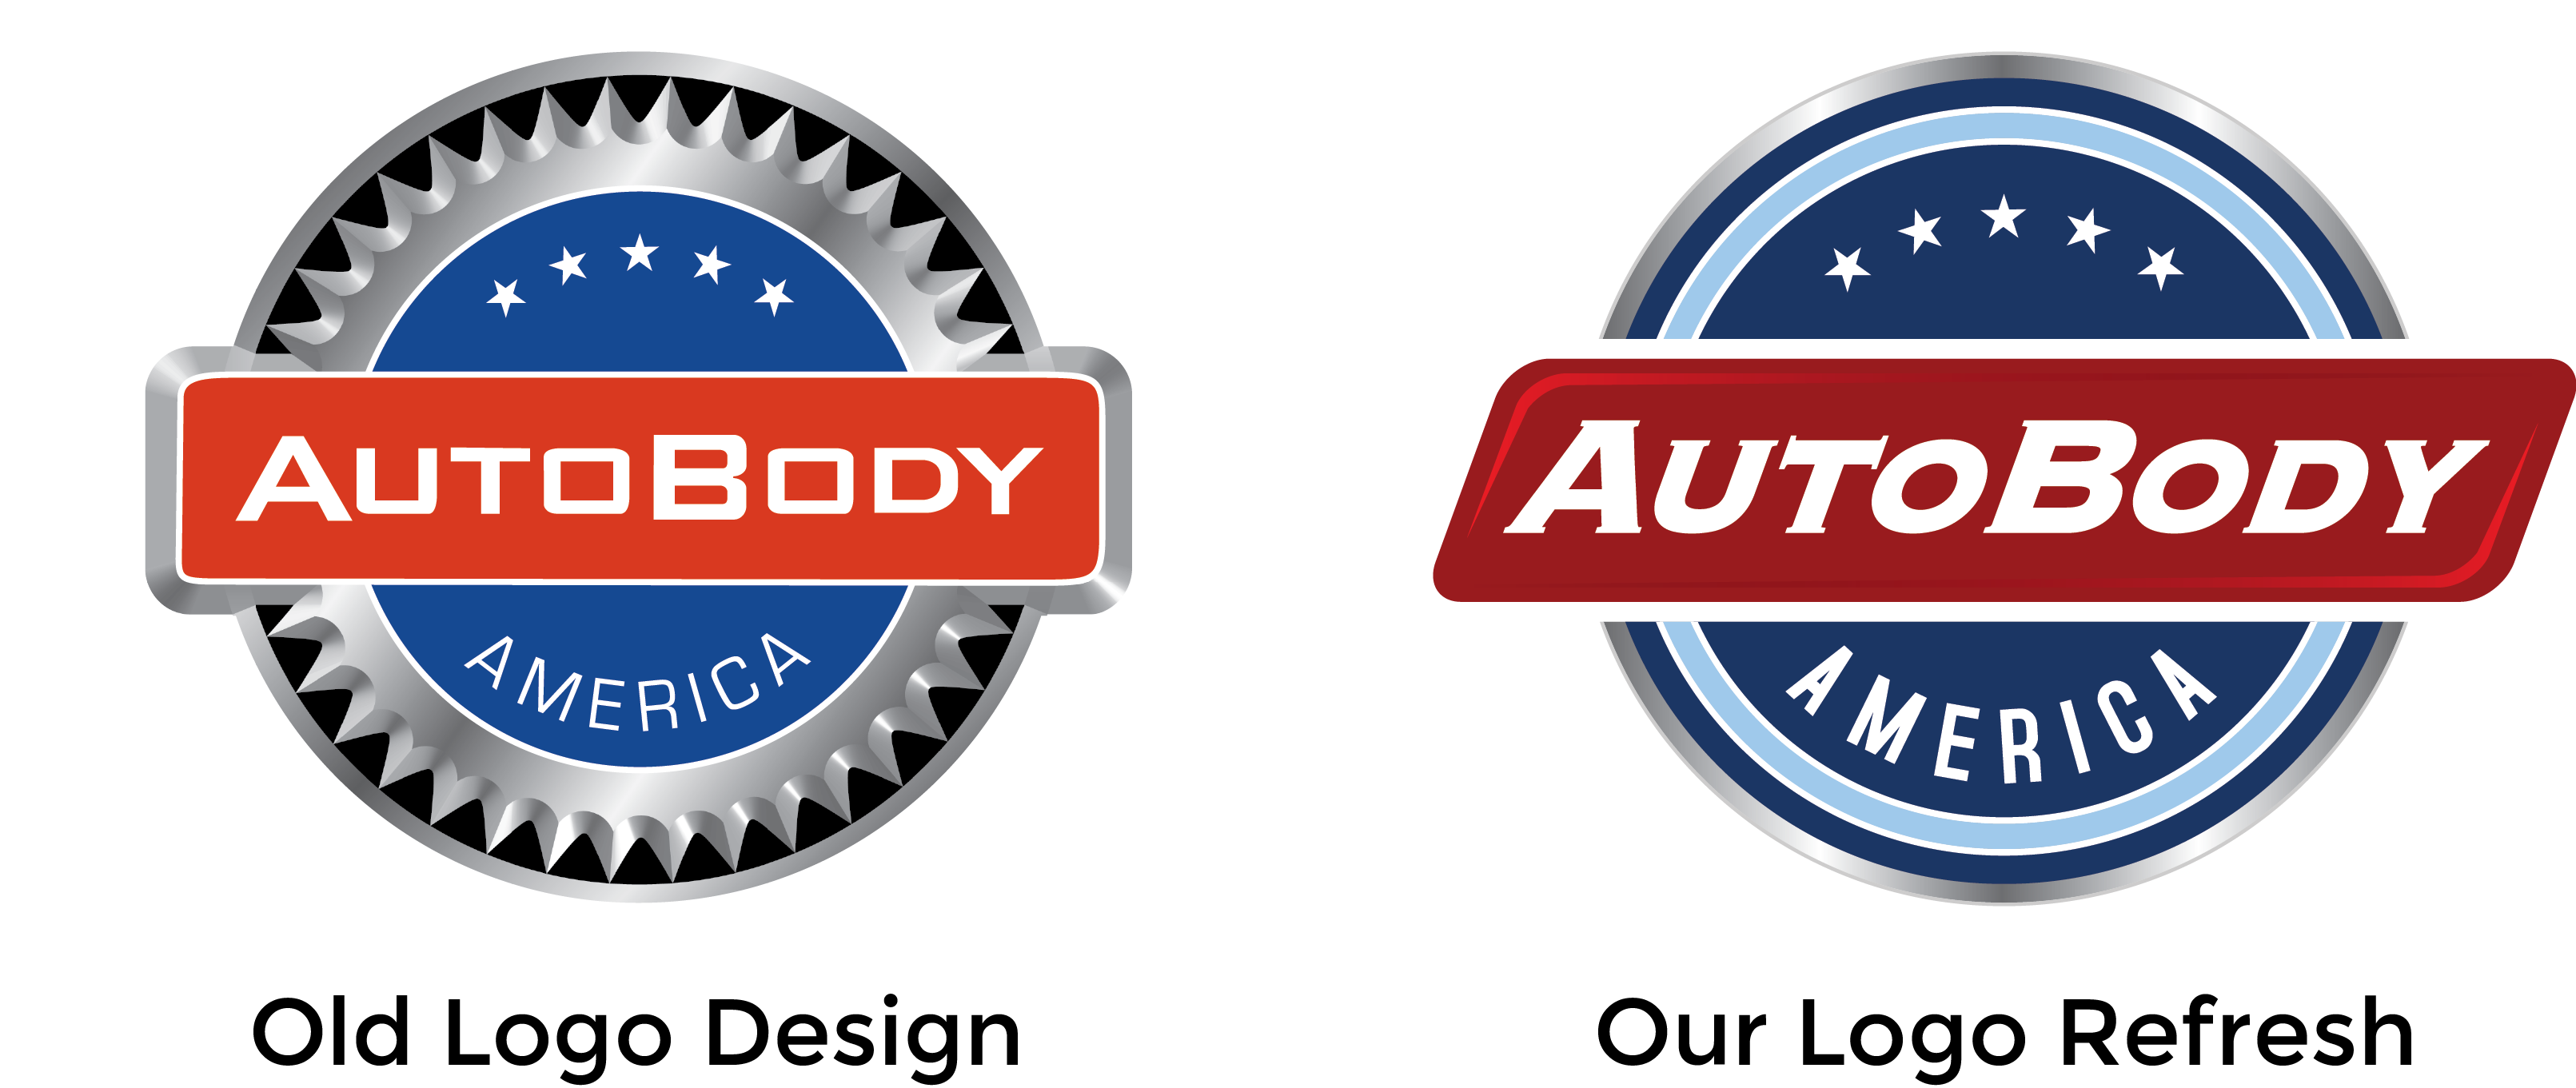 Autobody-Refresh-Graphic.png